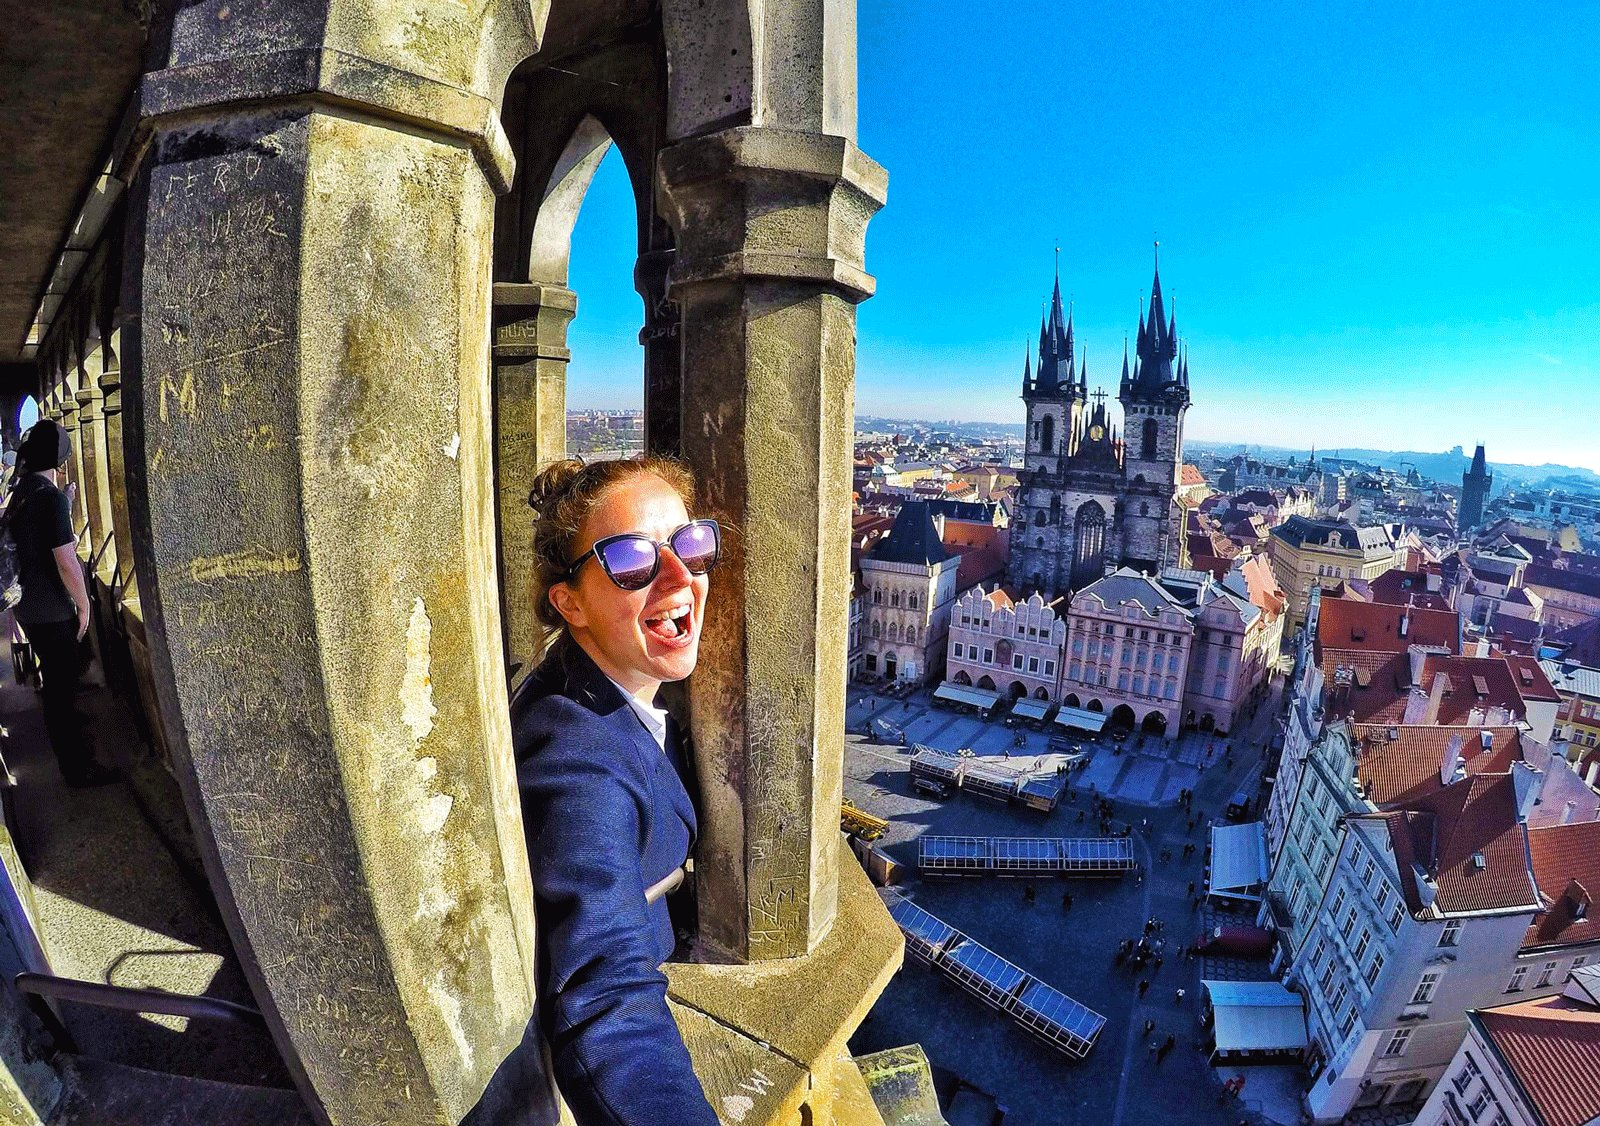 How to go up to the Old Town Hall tower in Prague